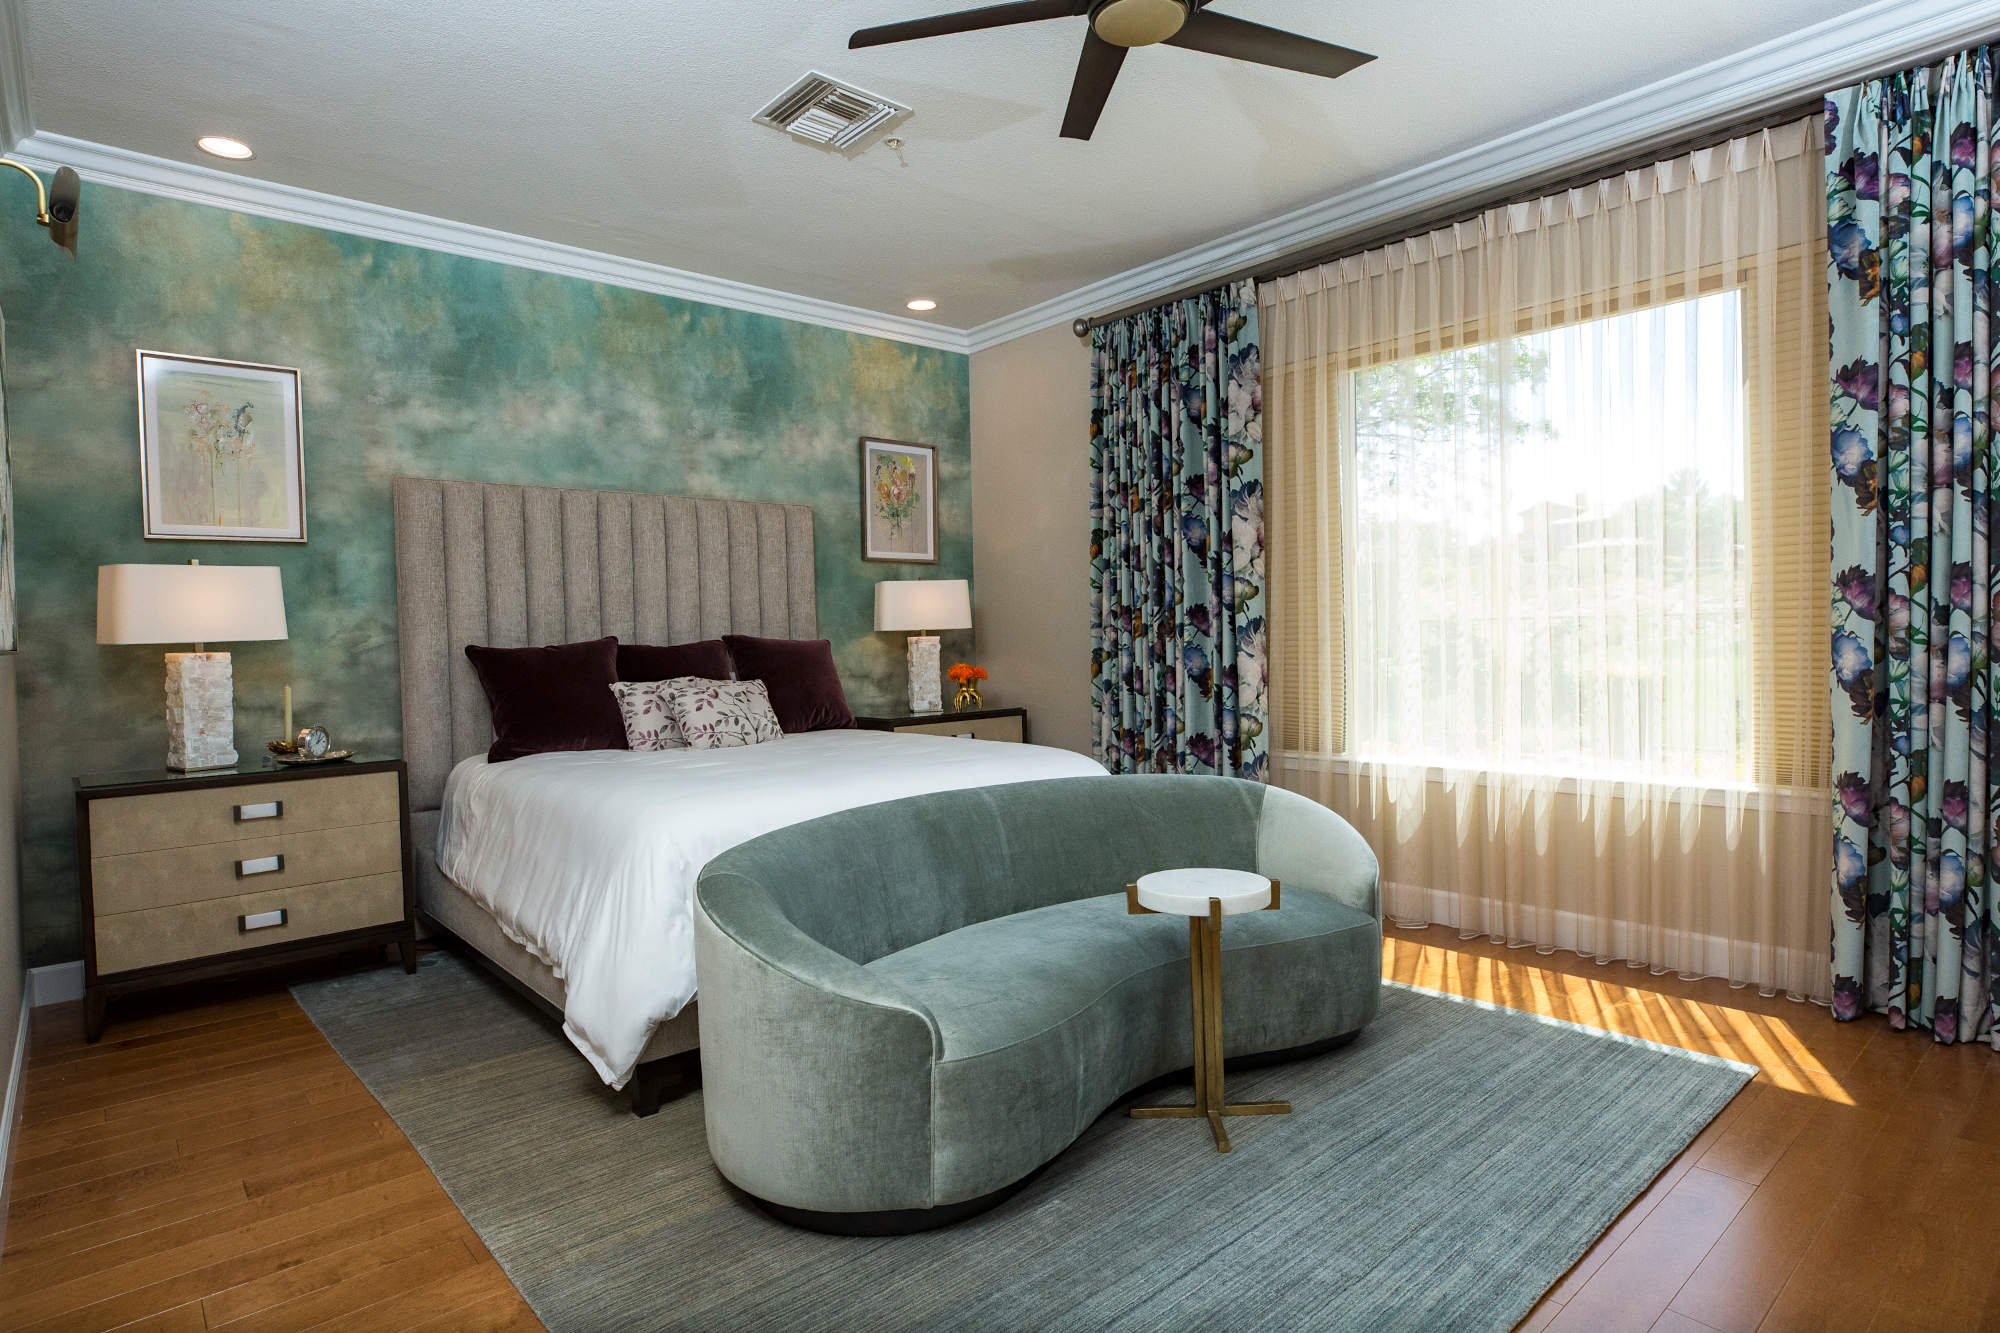 Master bedroom with sage wallpaper, multi colored drapes with sheers, wood floor, curved sofa.